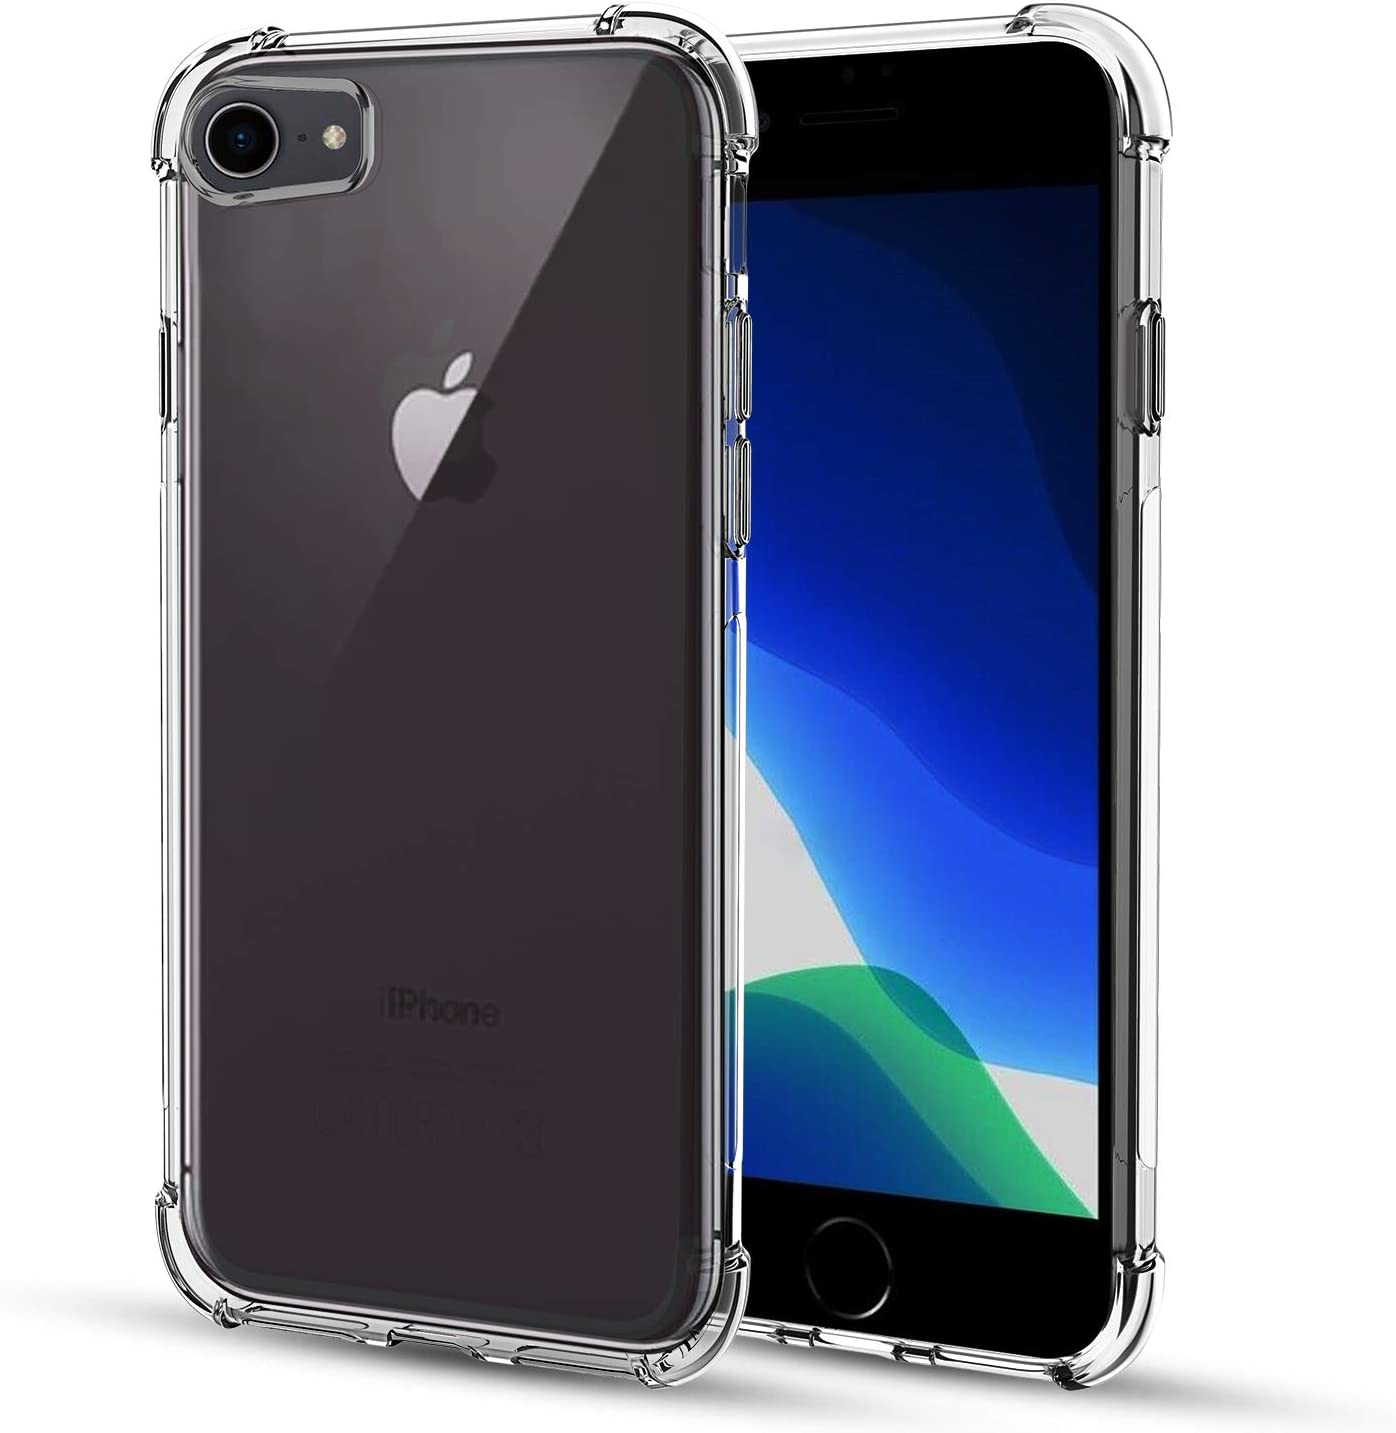 TGOOD Case for Apple iPhone SE 2020, iPhone 8, iPhone 7, Shock-Absorption Bumper Cover, Anti-Scratch Crystal Clear Back, Ultra Slim Soft Silicone TPU ...